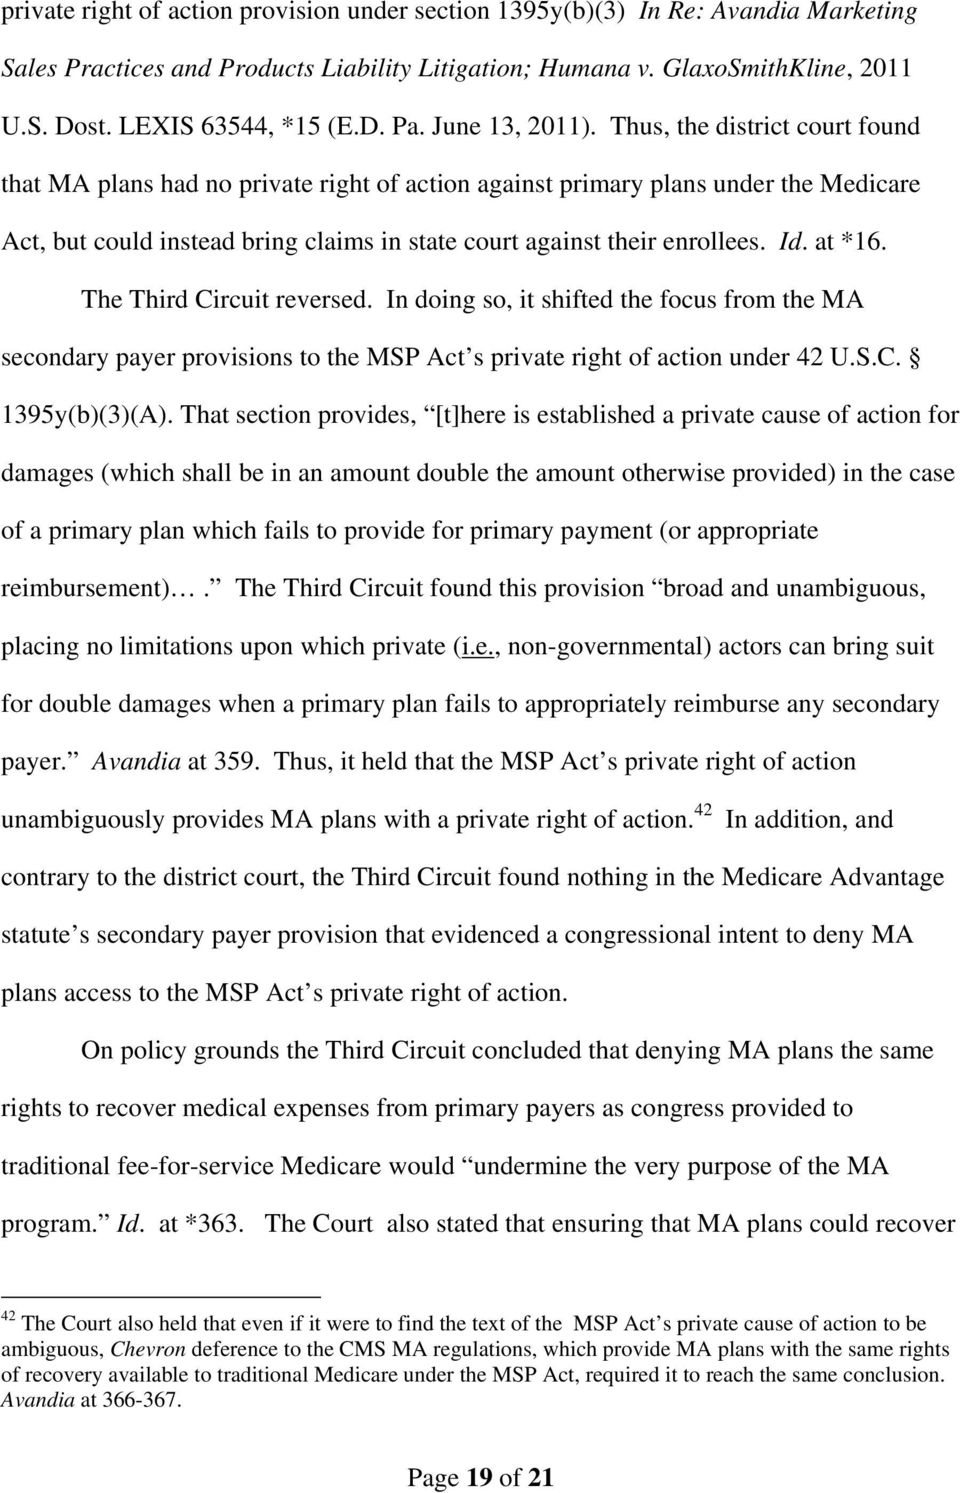 Thus, the district court found that MA plans had no private right of action against primary plans under the Medicare Act, but could instead bring claims in state court against their enrollees. Id.